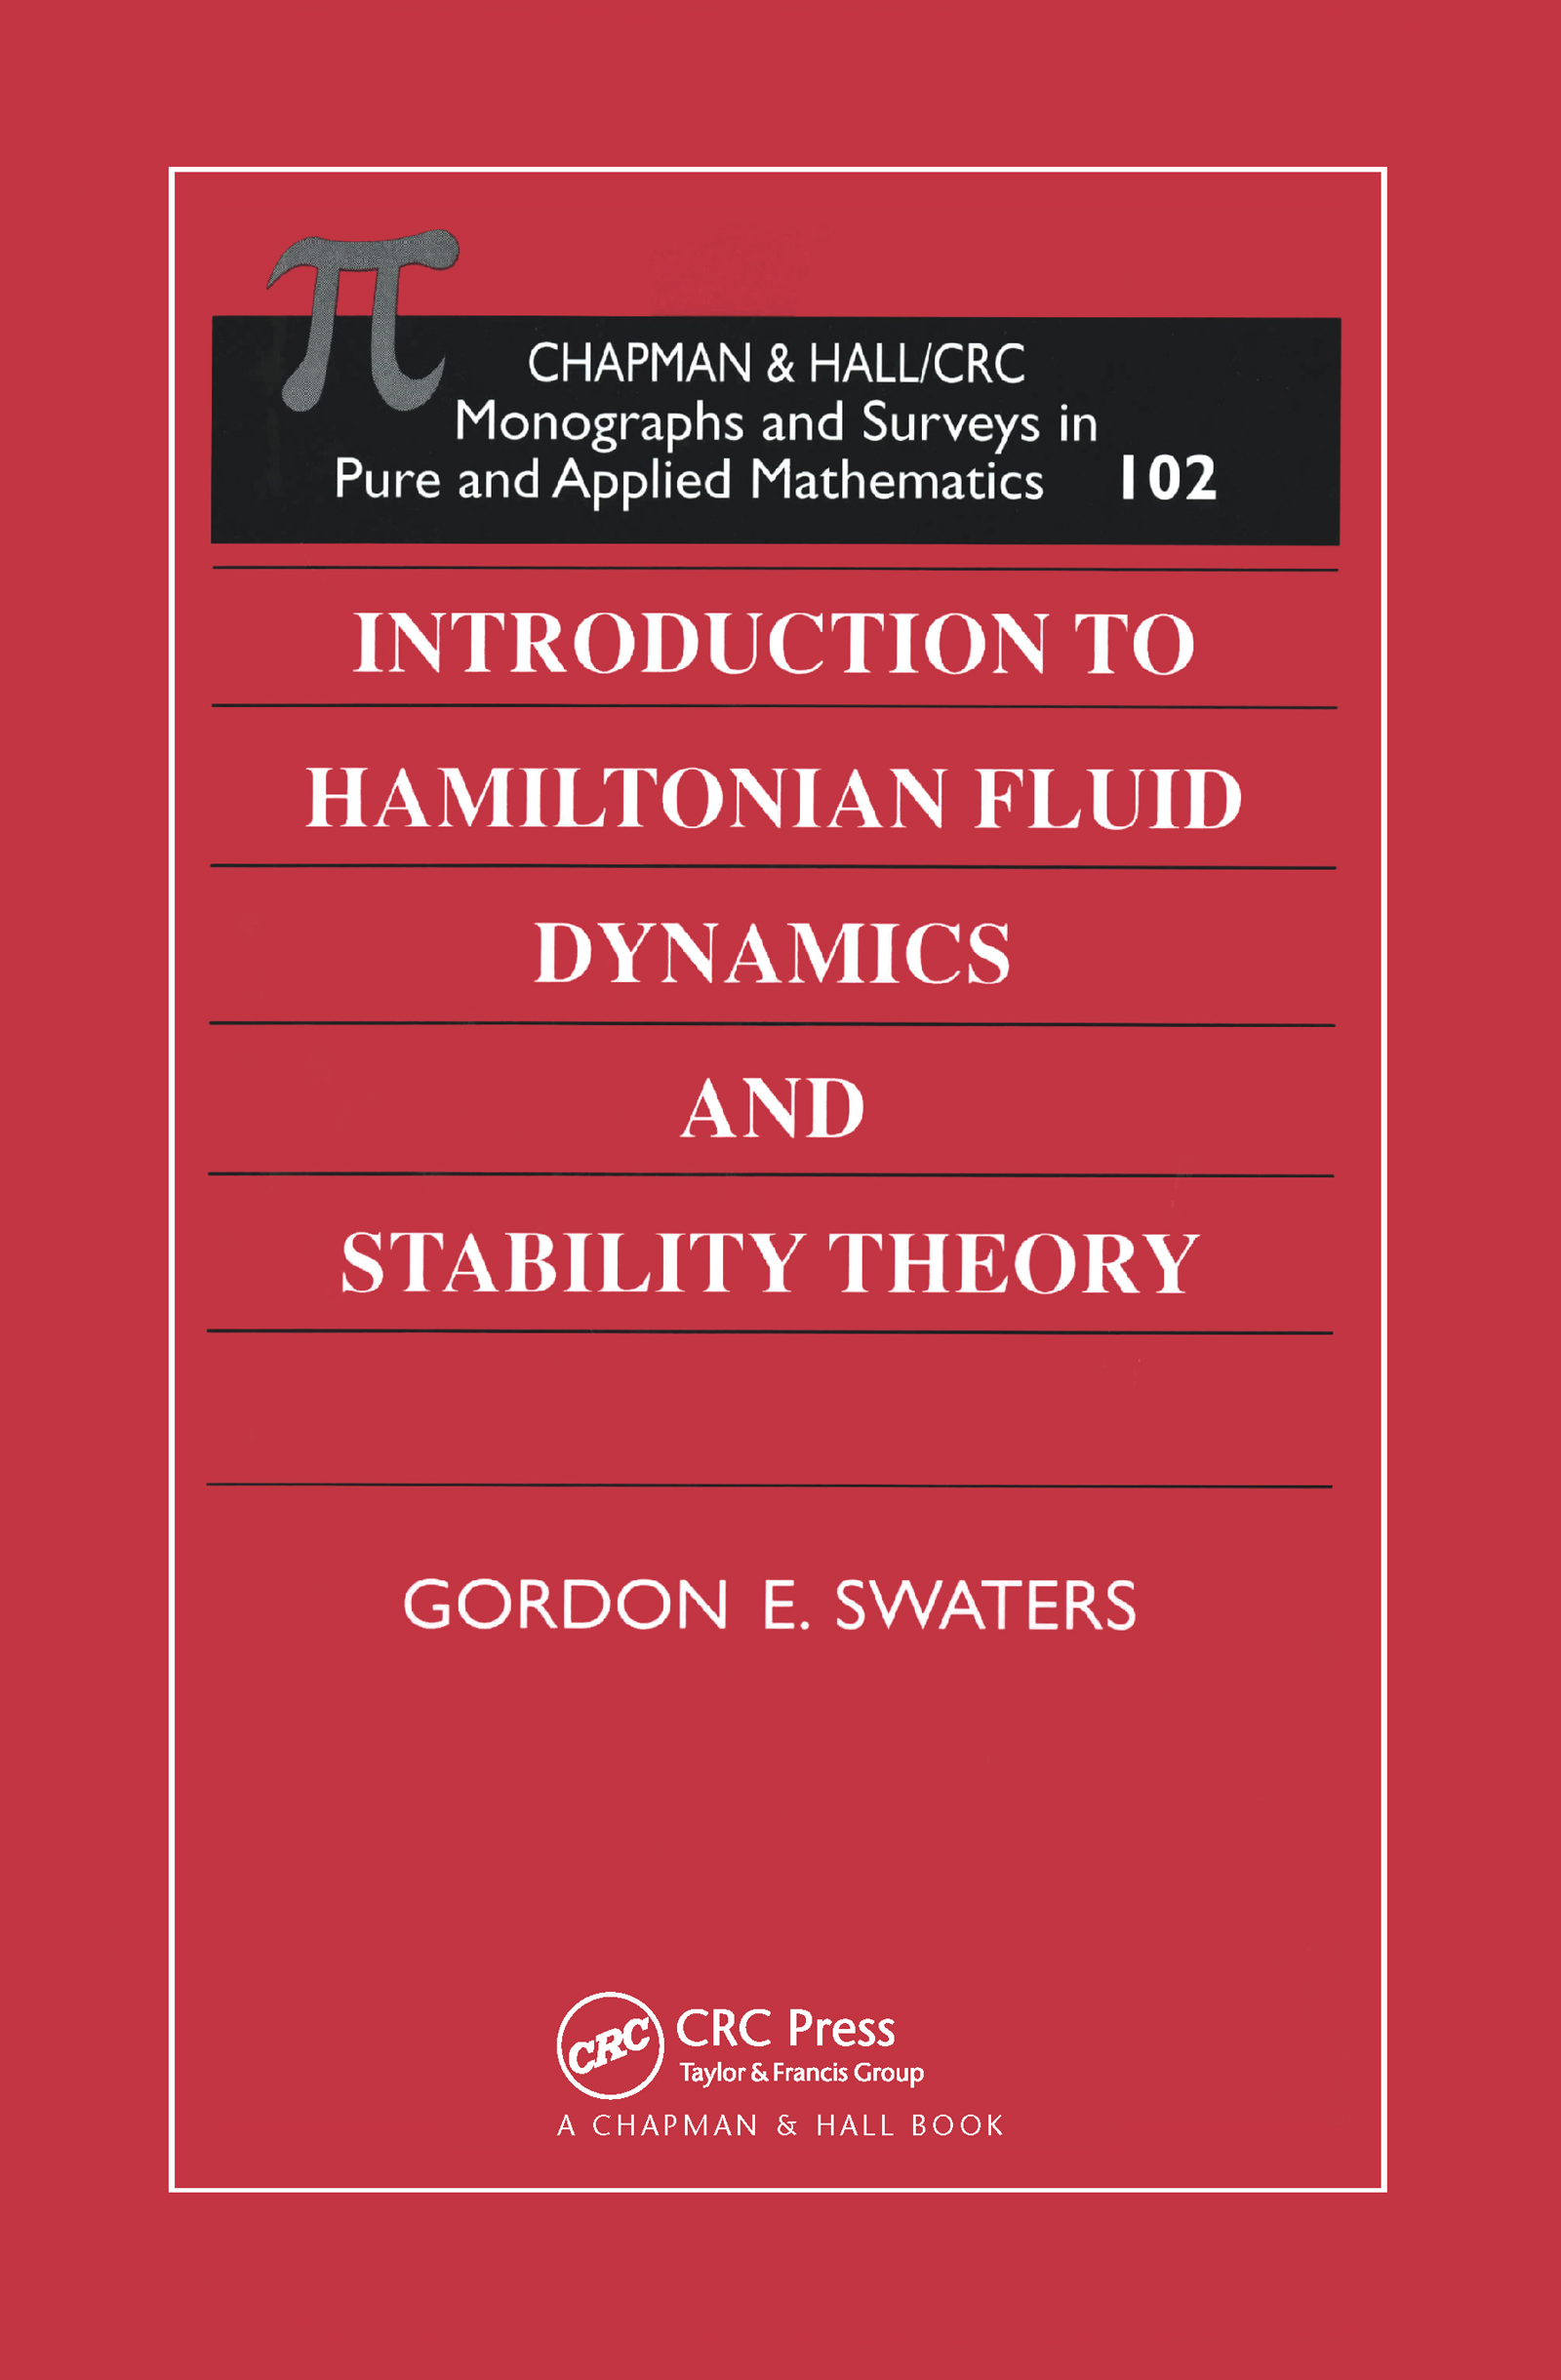 Introduction to Hamiltonian Fluid Dynamics and Stability Theory